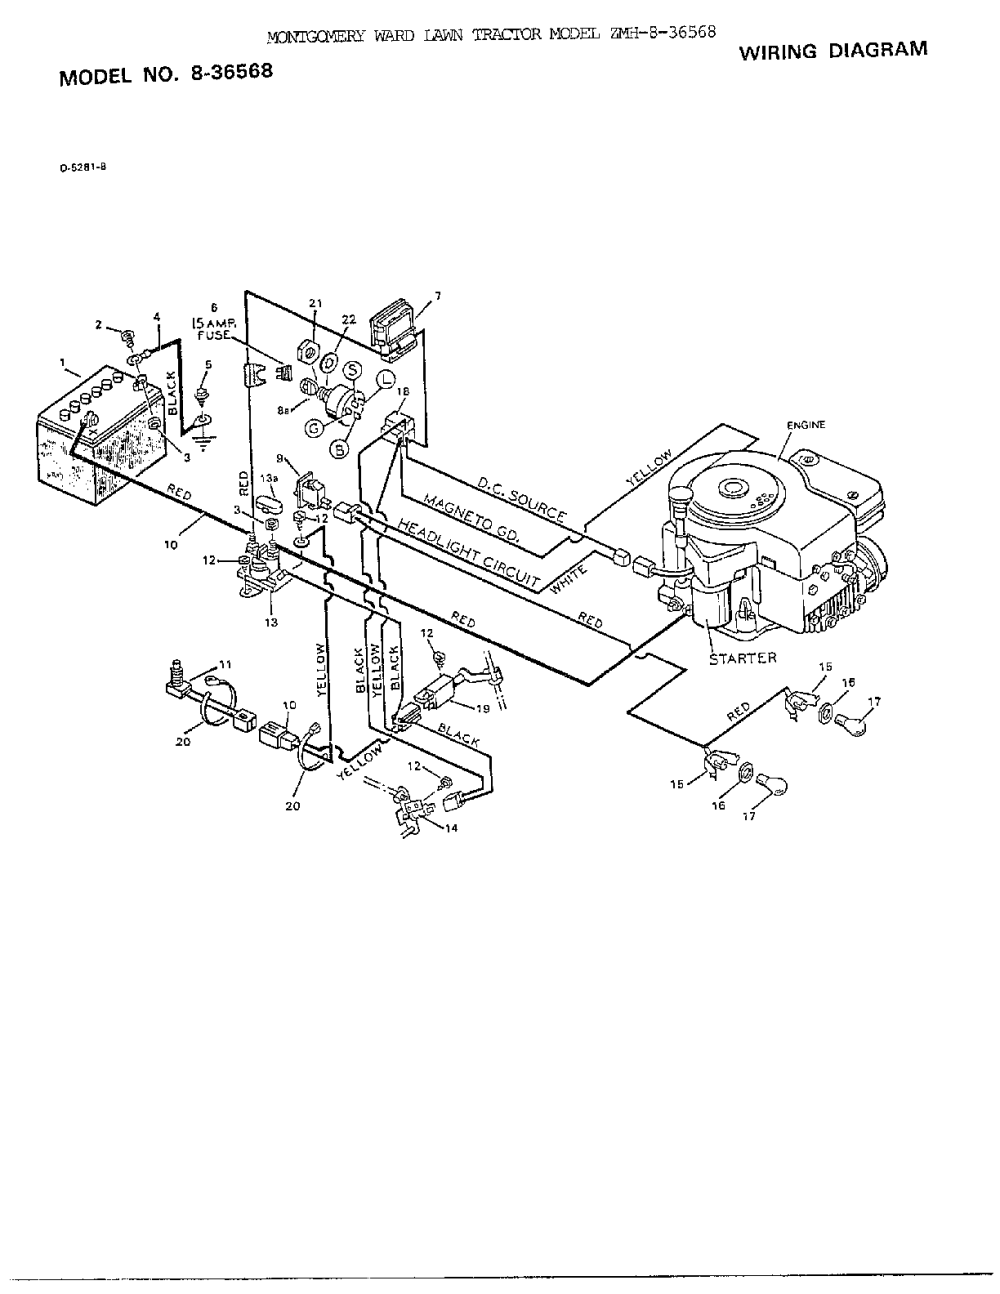 medium resolution of murray lawn mower engine diagram wiring diagram sort looking for murray model 8 36568 front engine